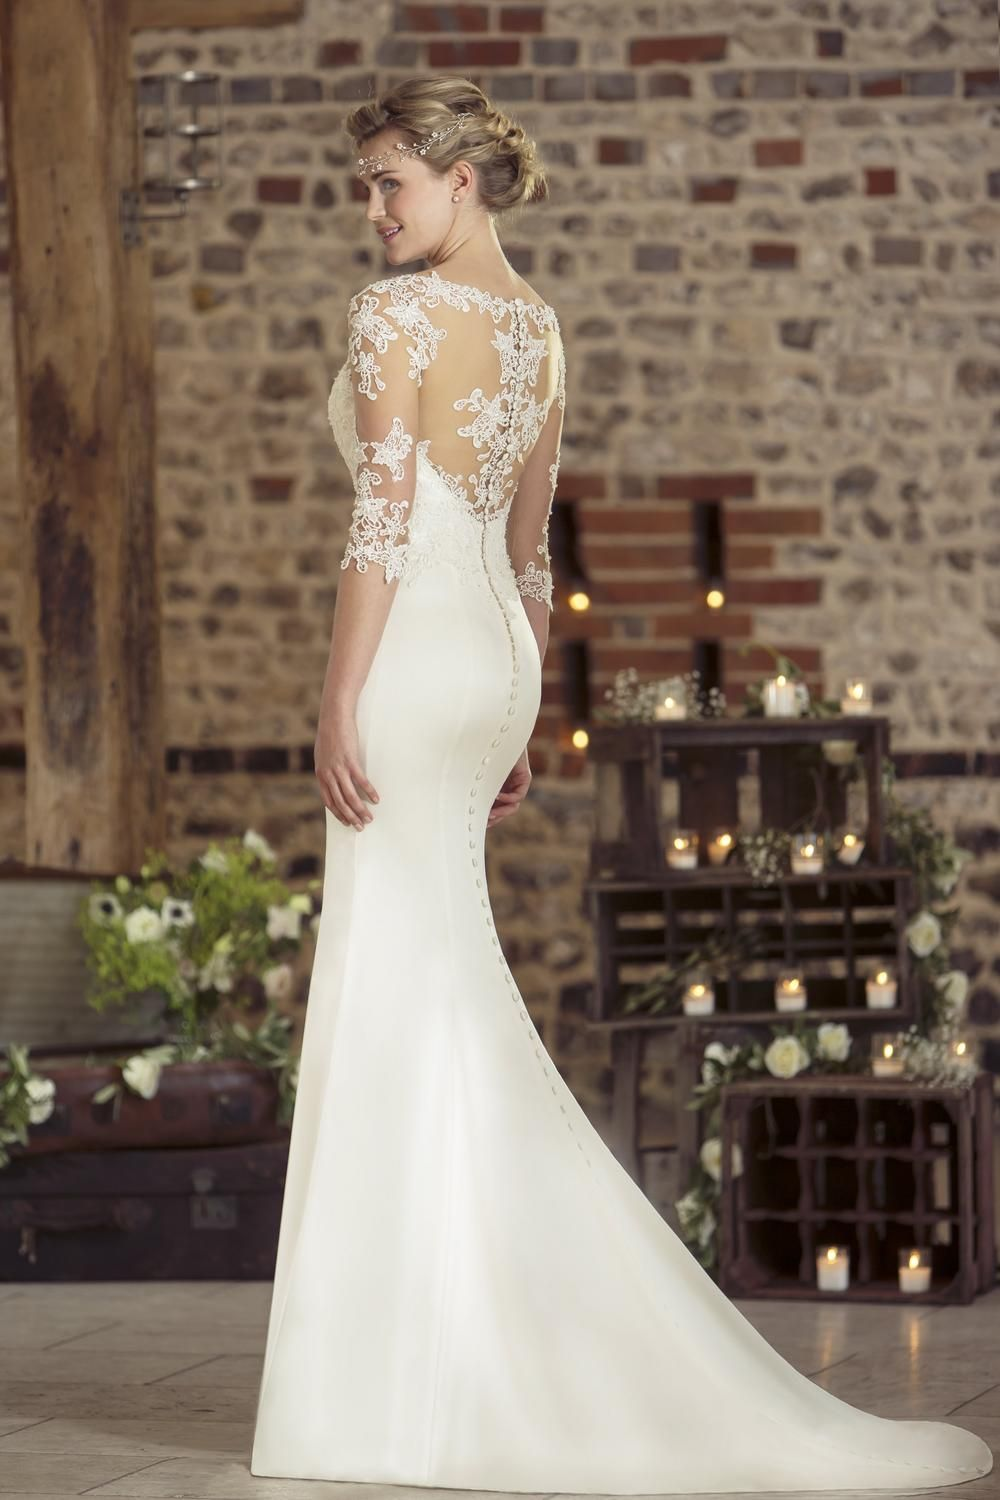 Contemporary wedding dresses and vintage inspired bridal